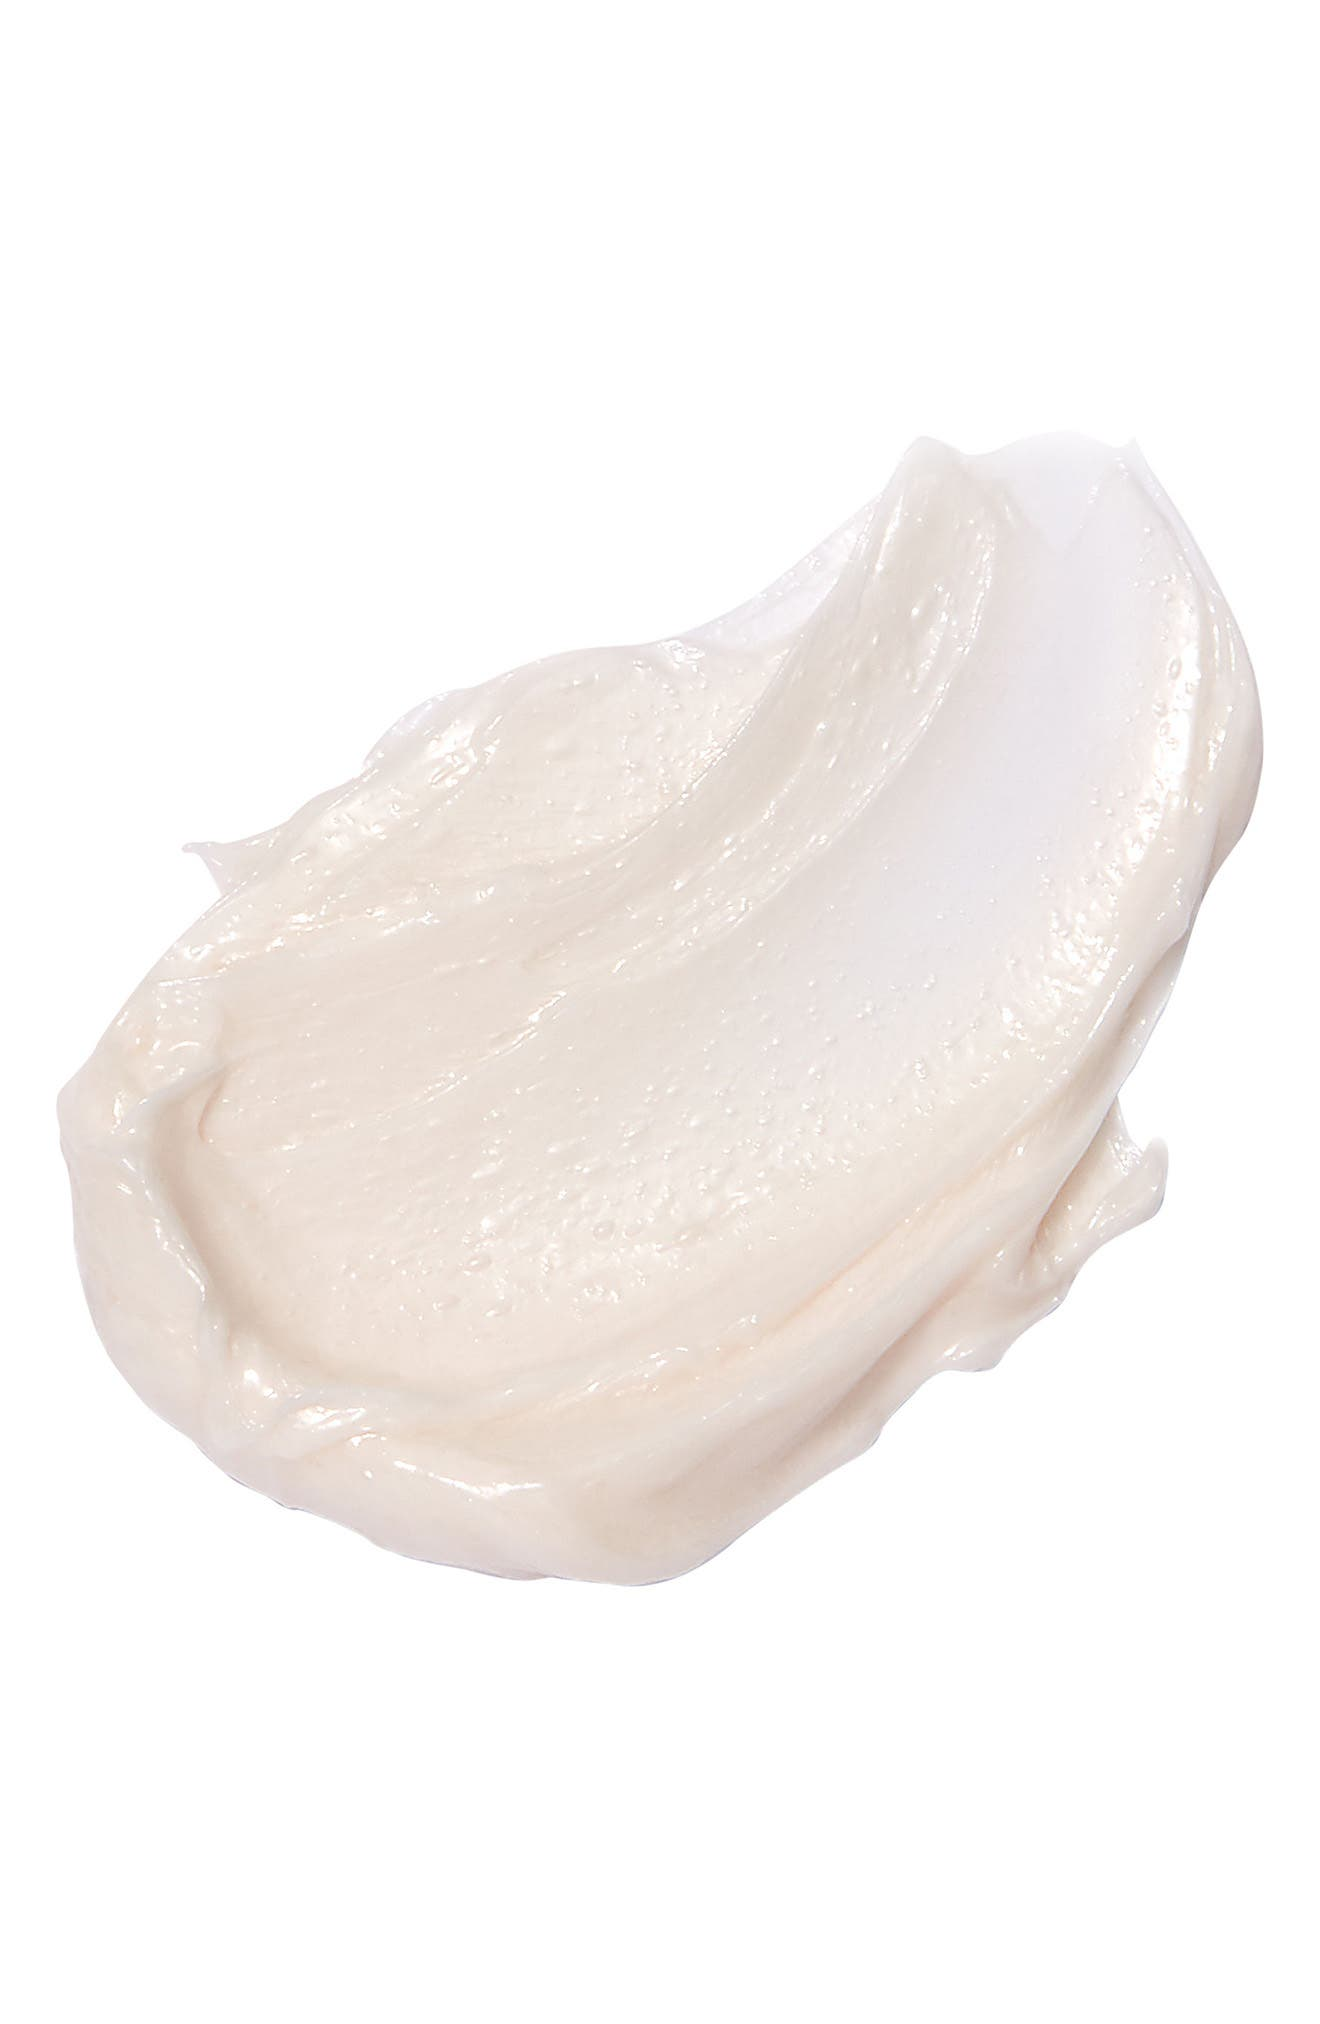 MARIO BADESCU, Caviar Night Cream, Alternate thumbnail 2, color, NO COLOR